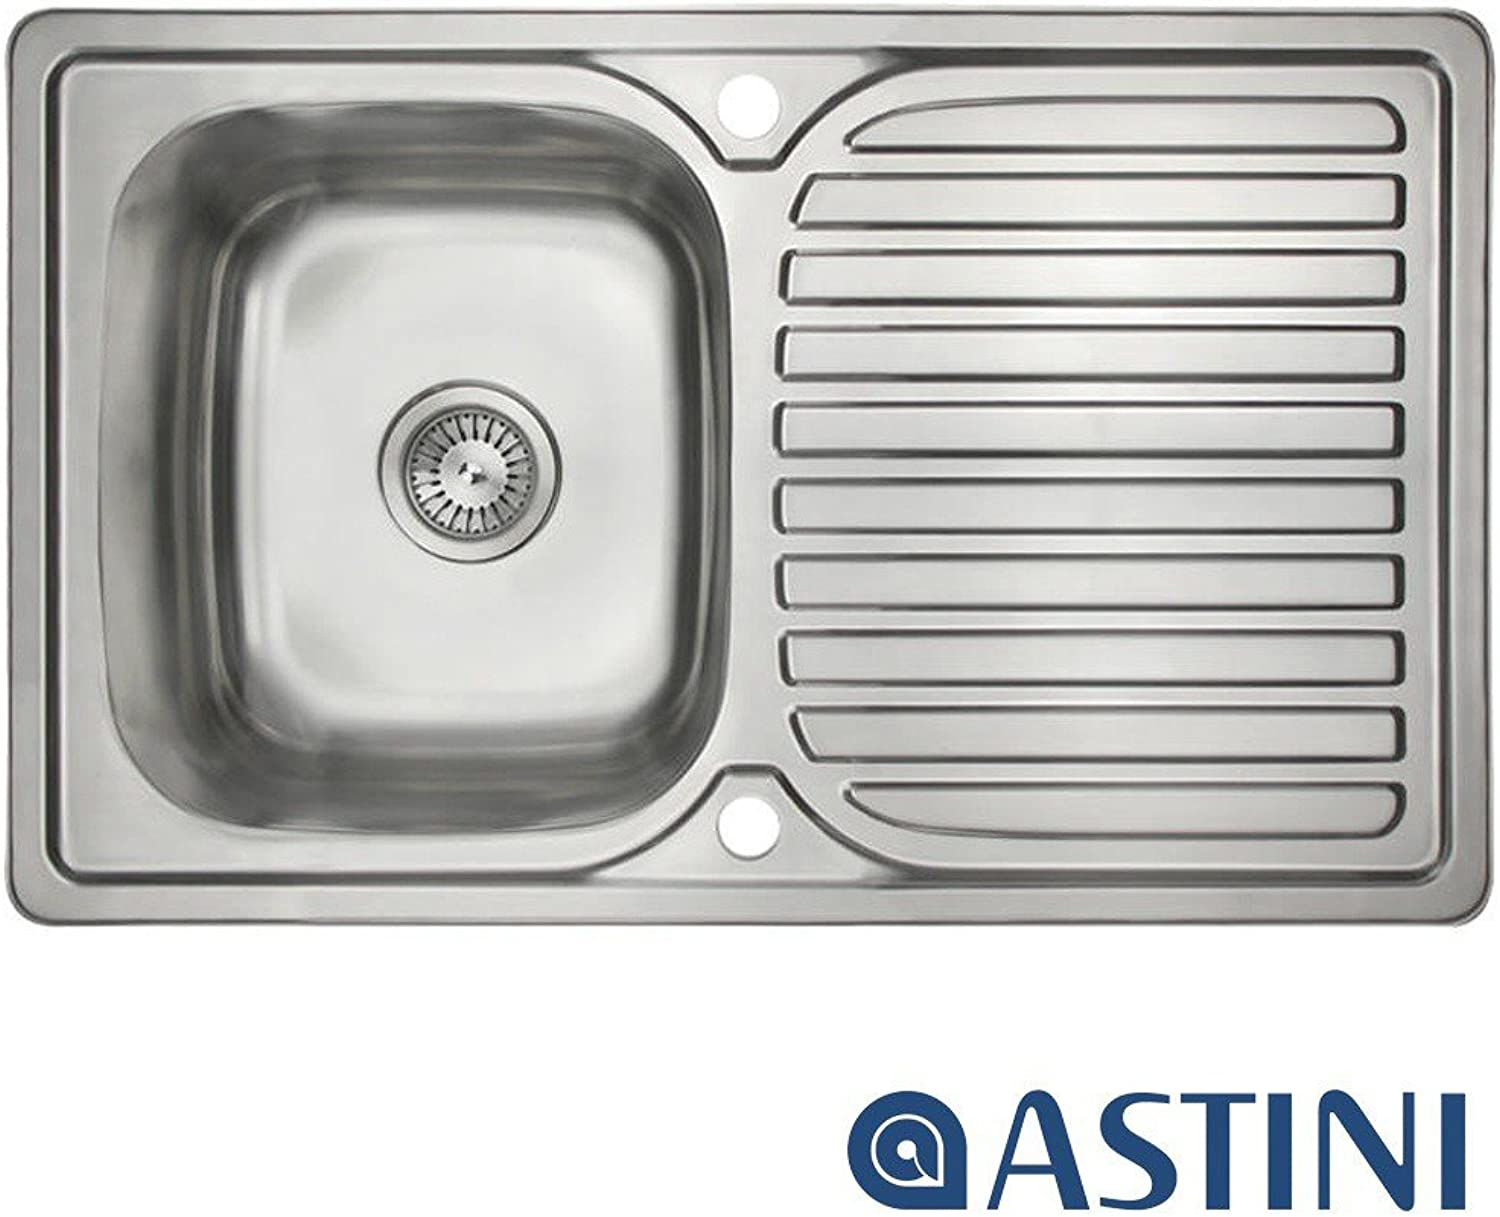 Astini Velia 1.0 Bowl Brushed Stainless Steel Kitchen Sink & Waste AS1347